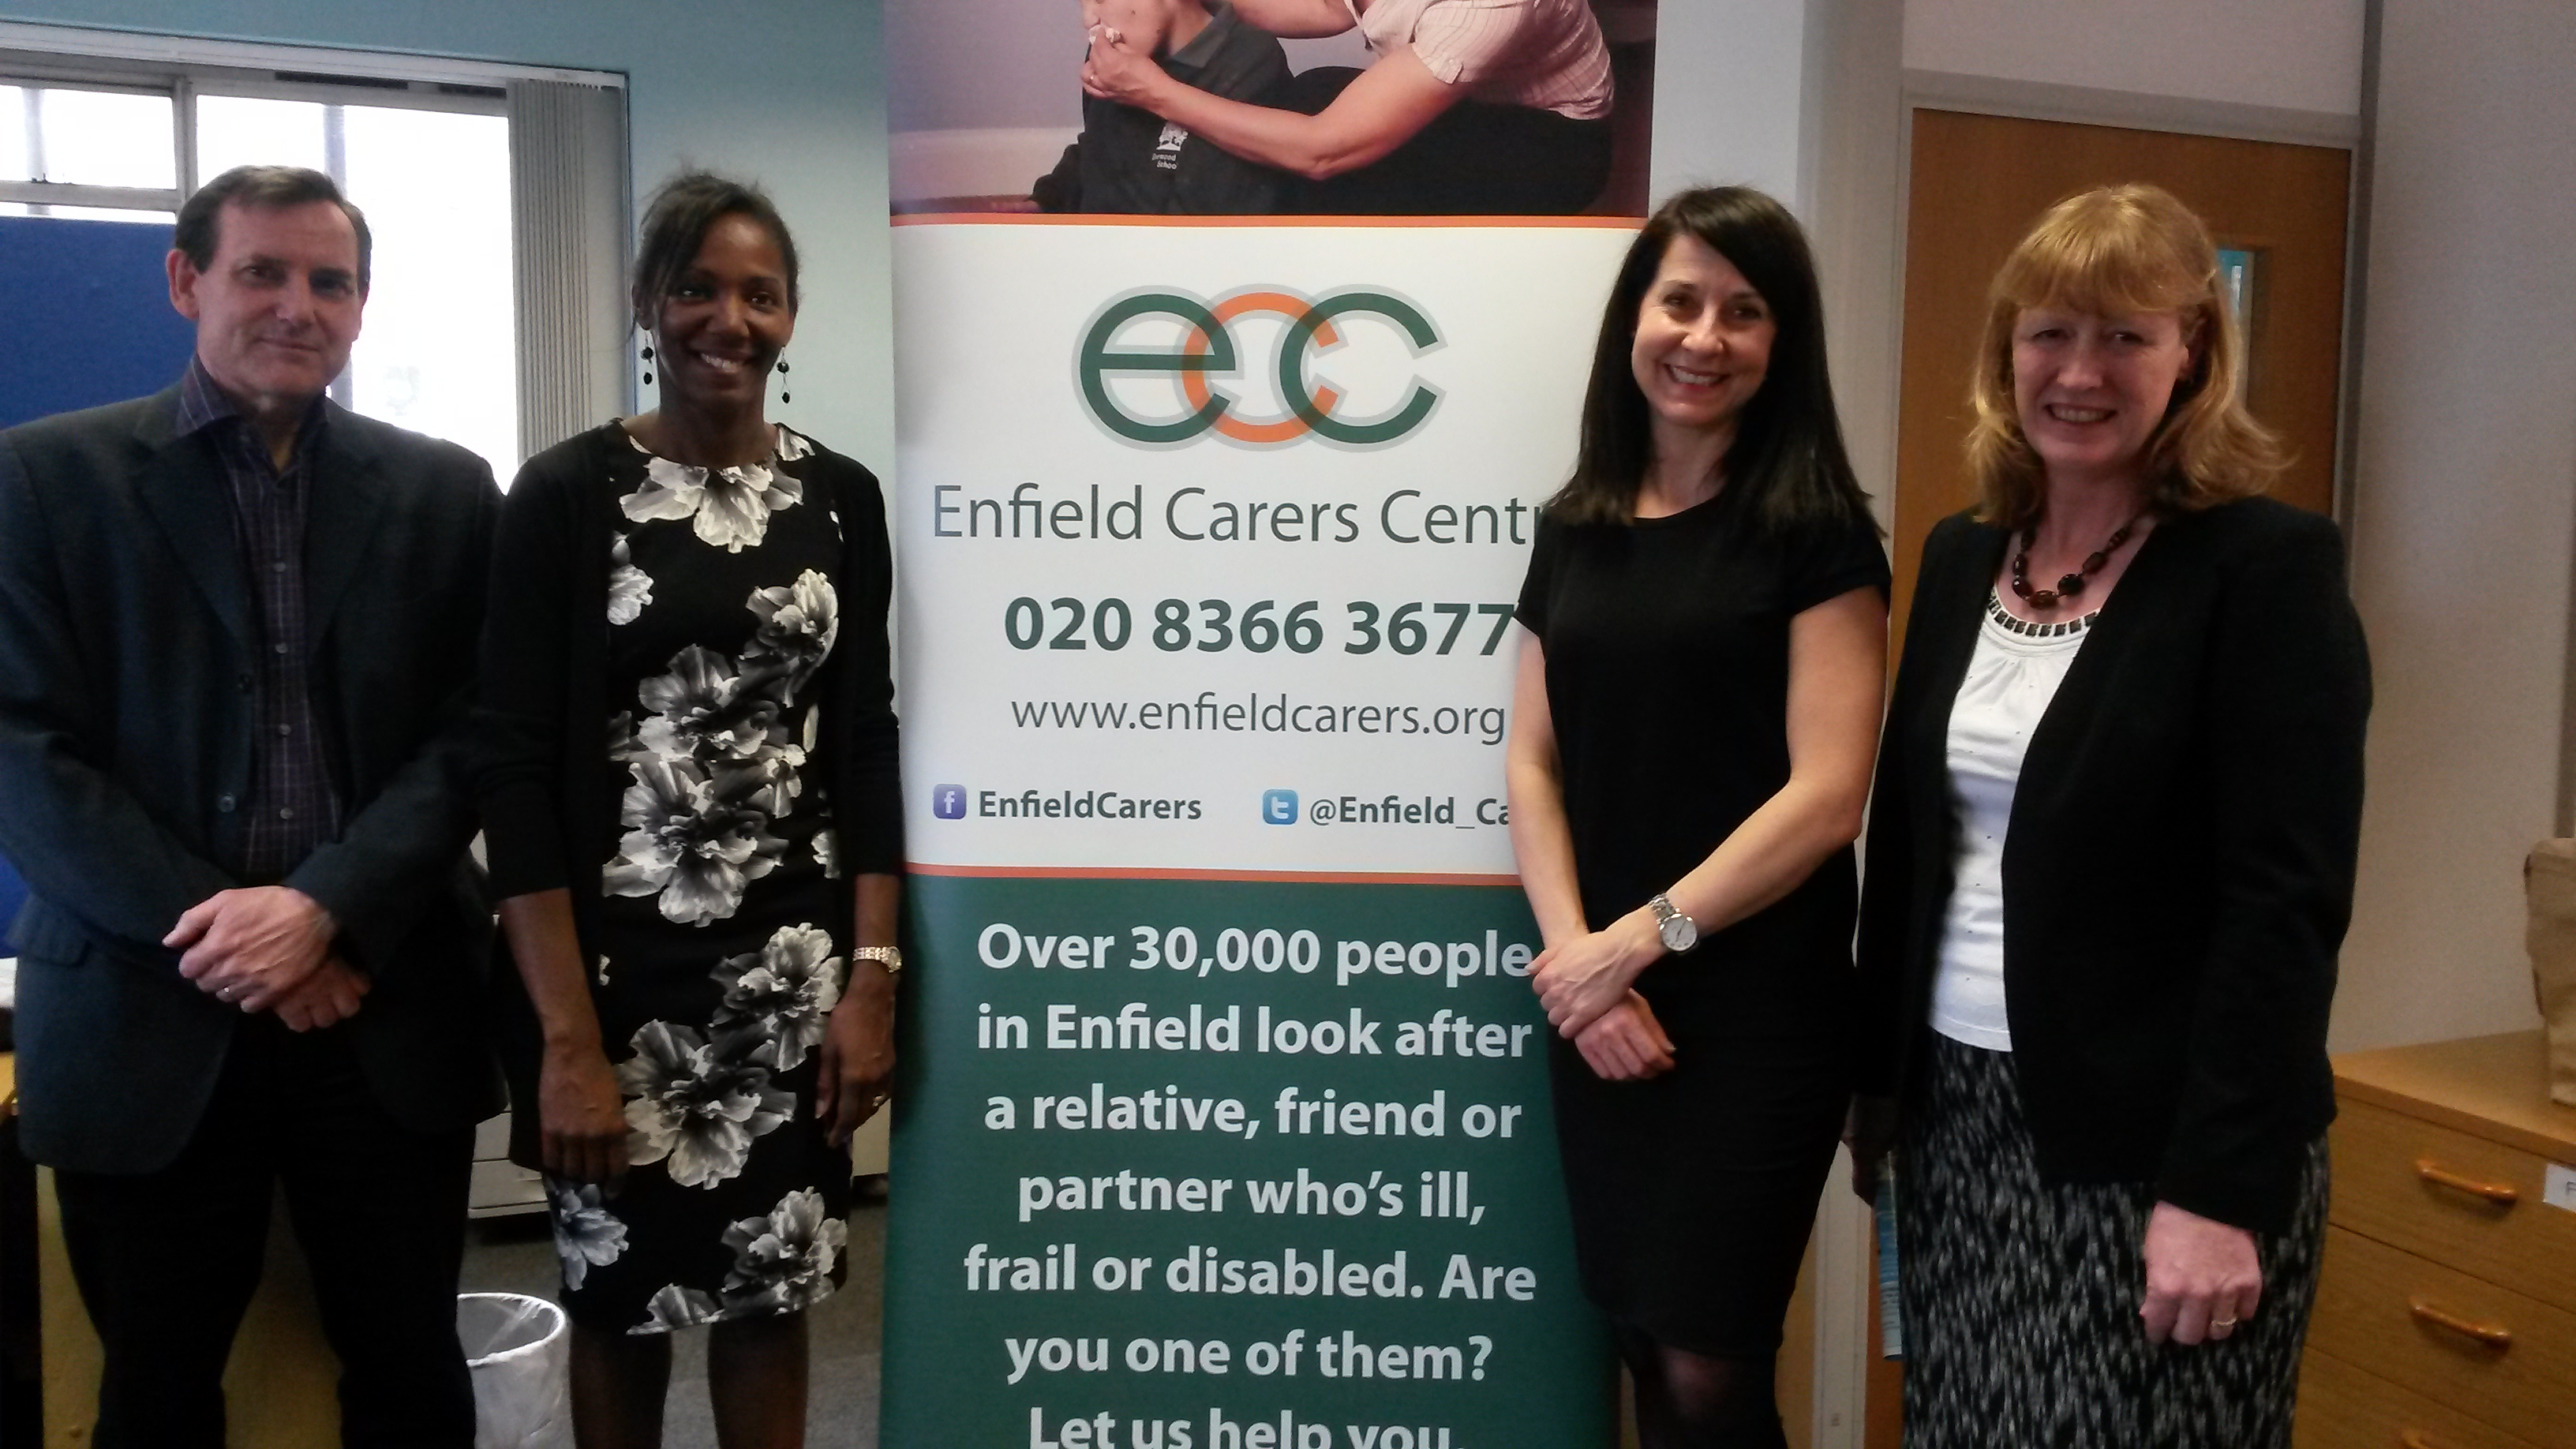 Enfield_Carers_Centre_staff.jpg